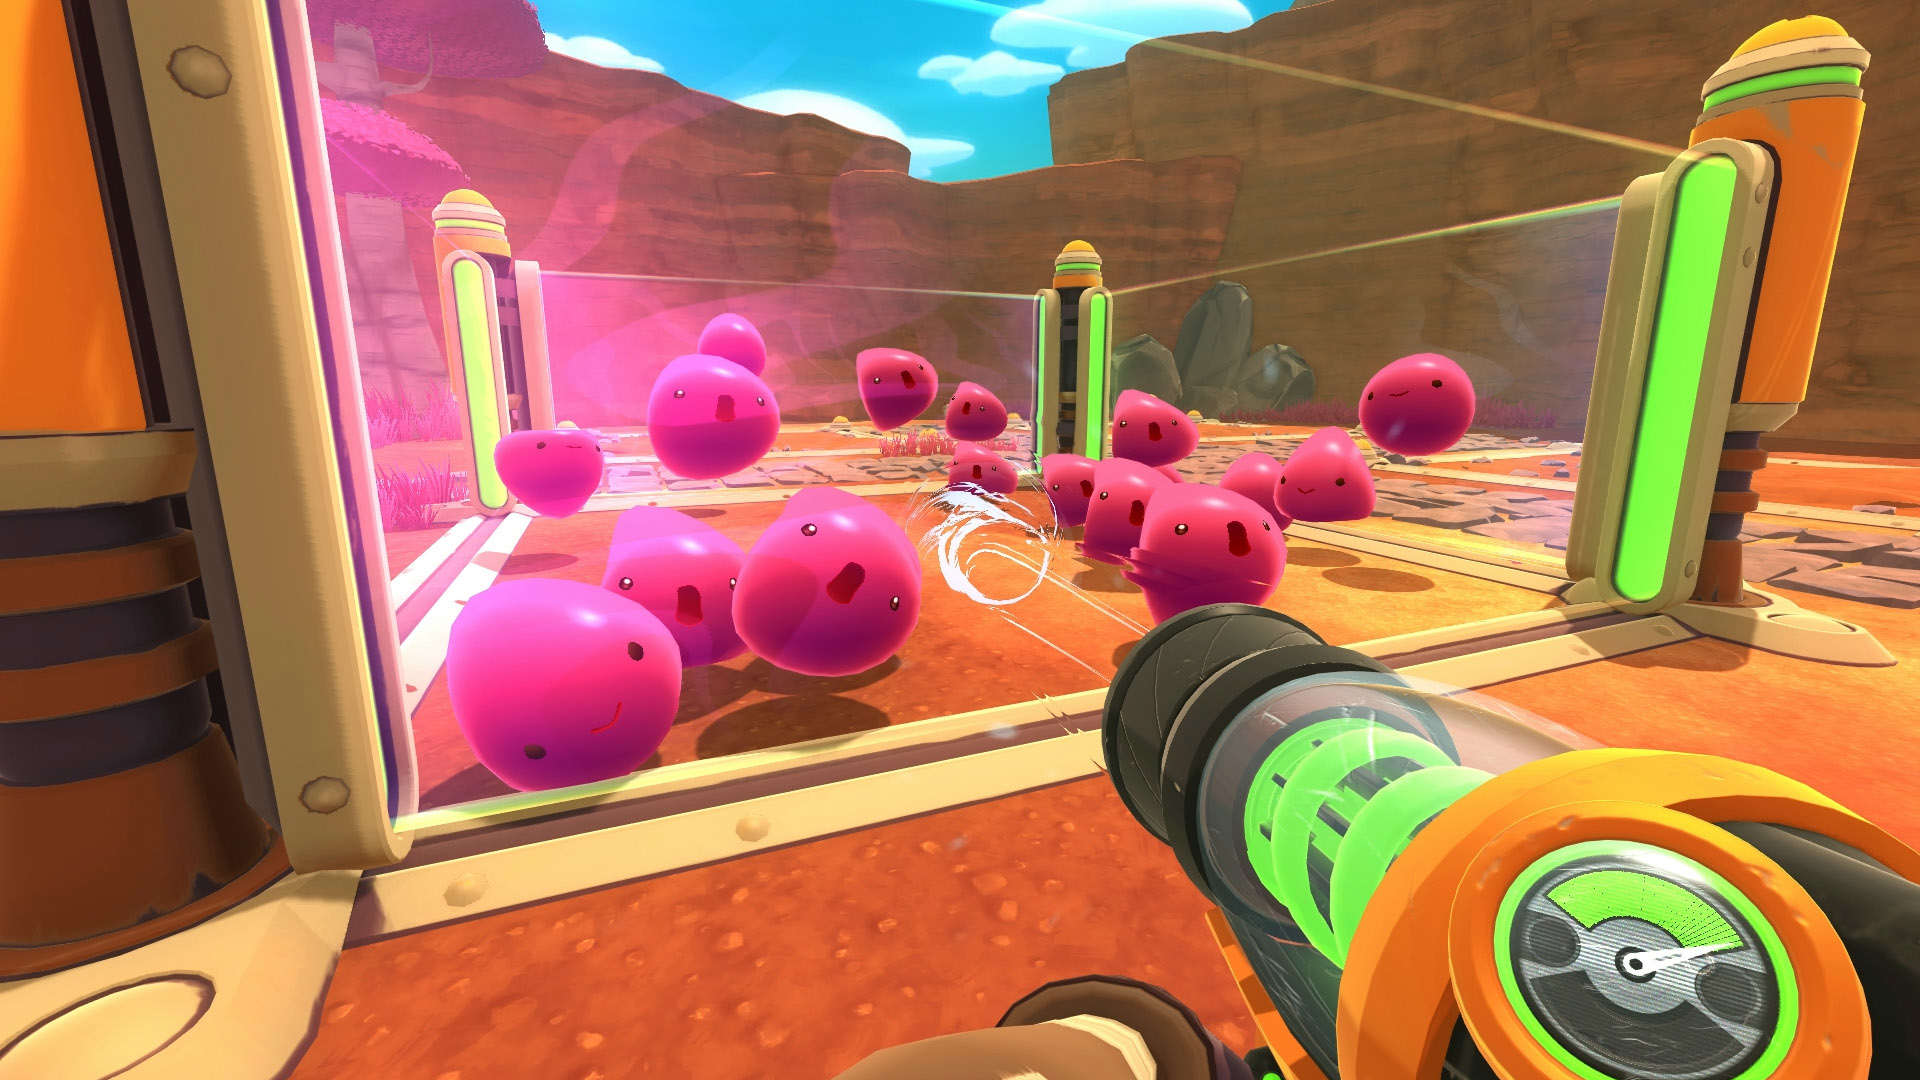 Glowing graphics and quirky fun will make Slime Rancher a new favorite.